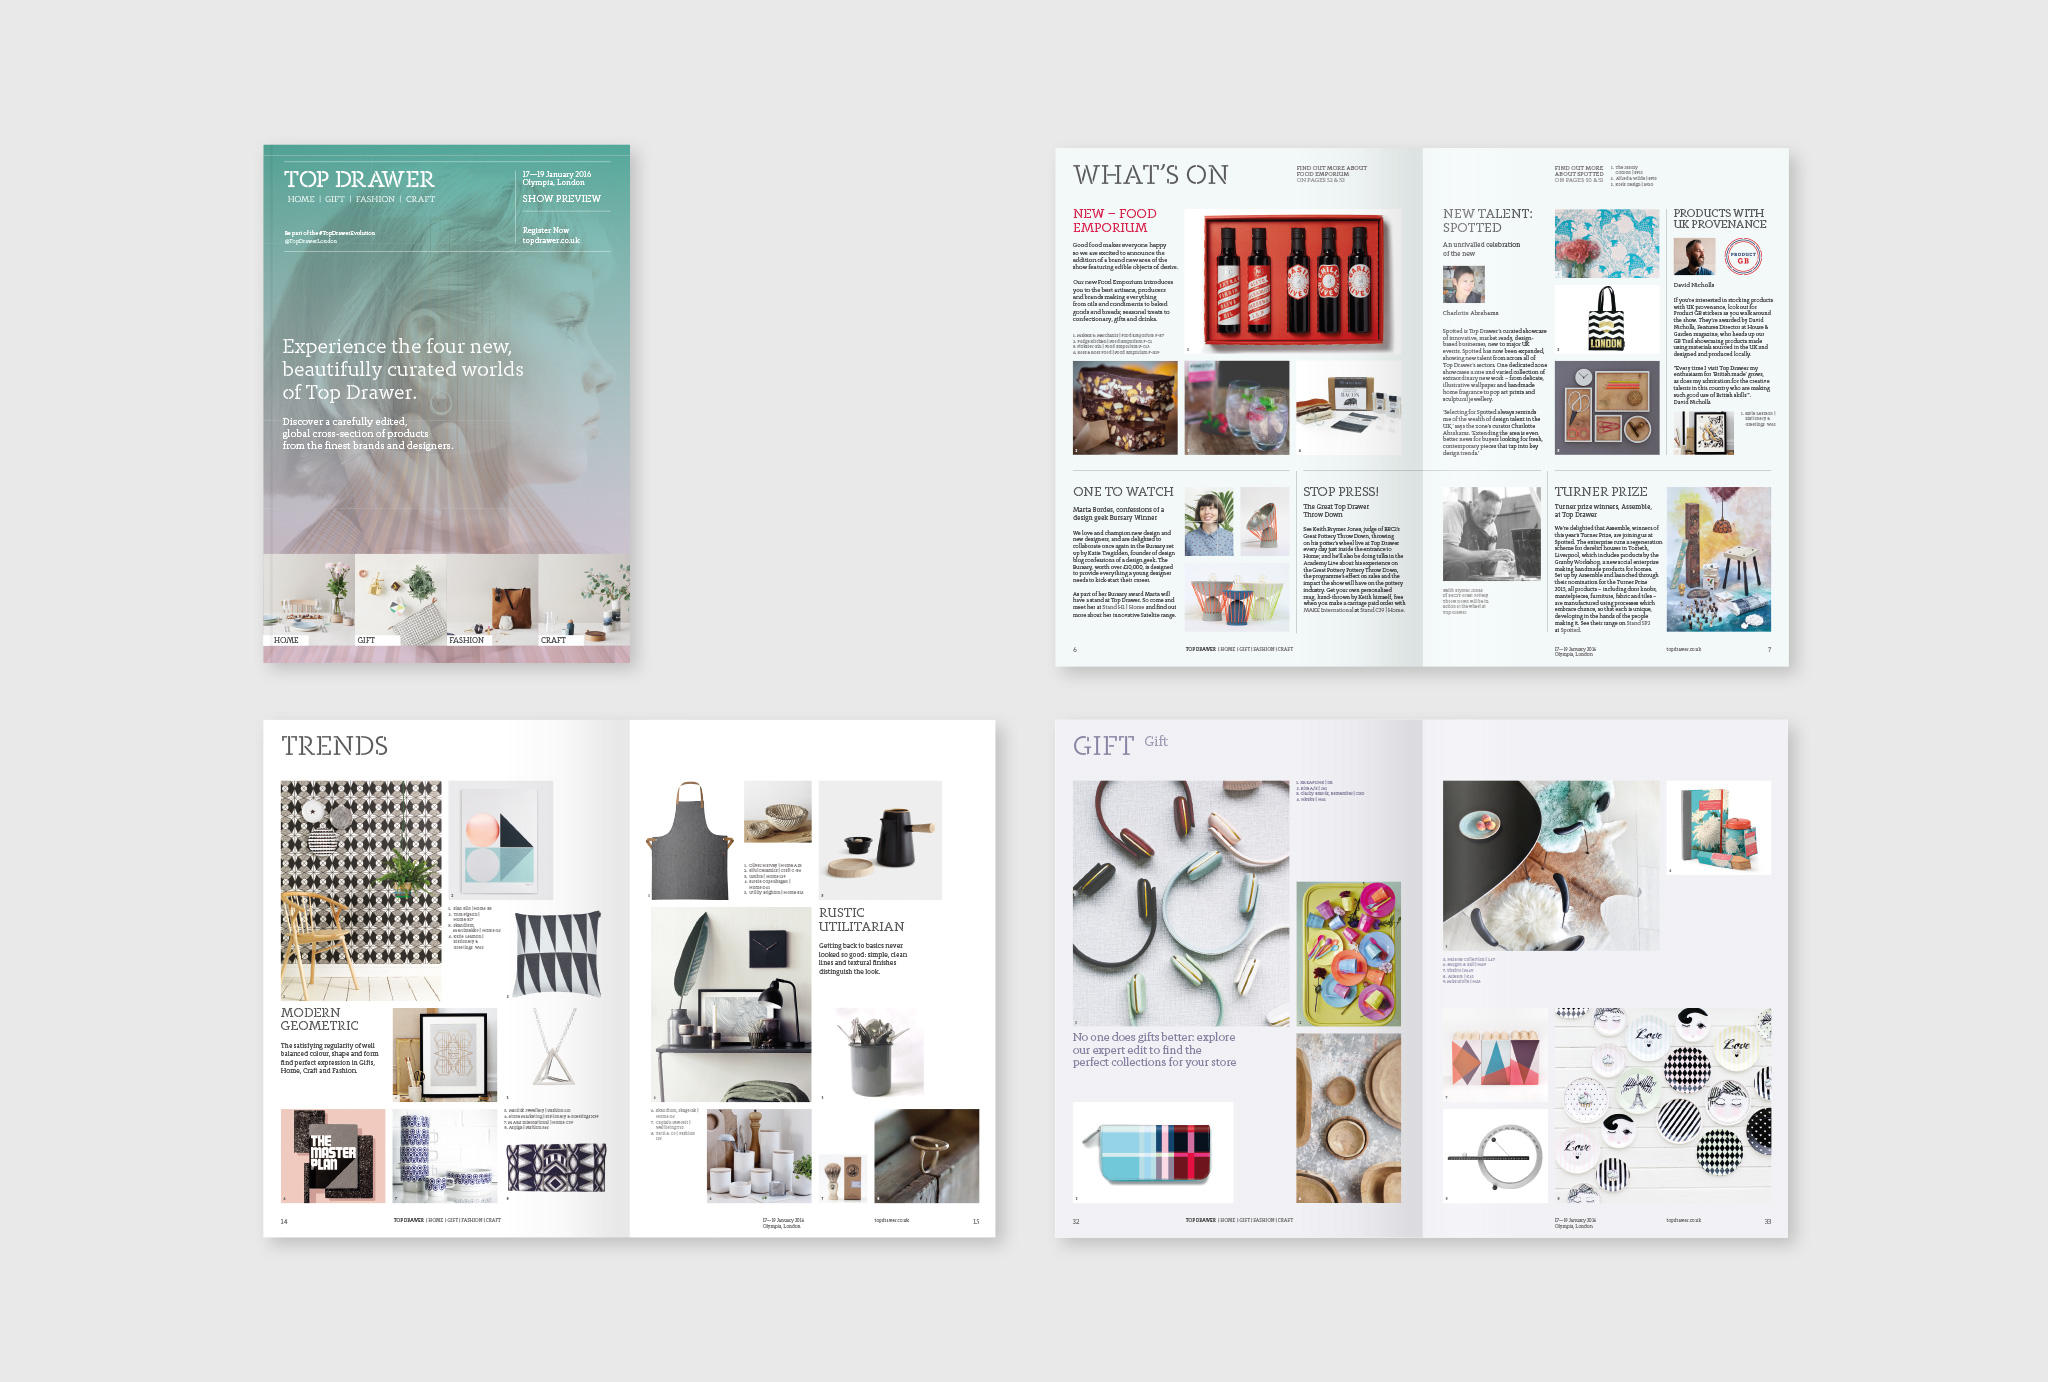 design for the Top Drawer show preview magazine